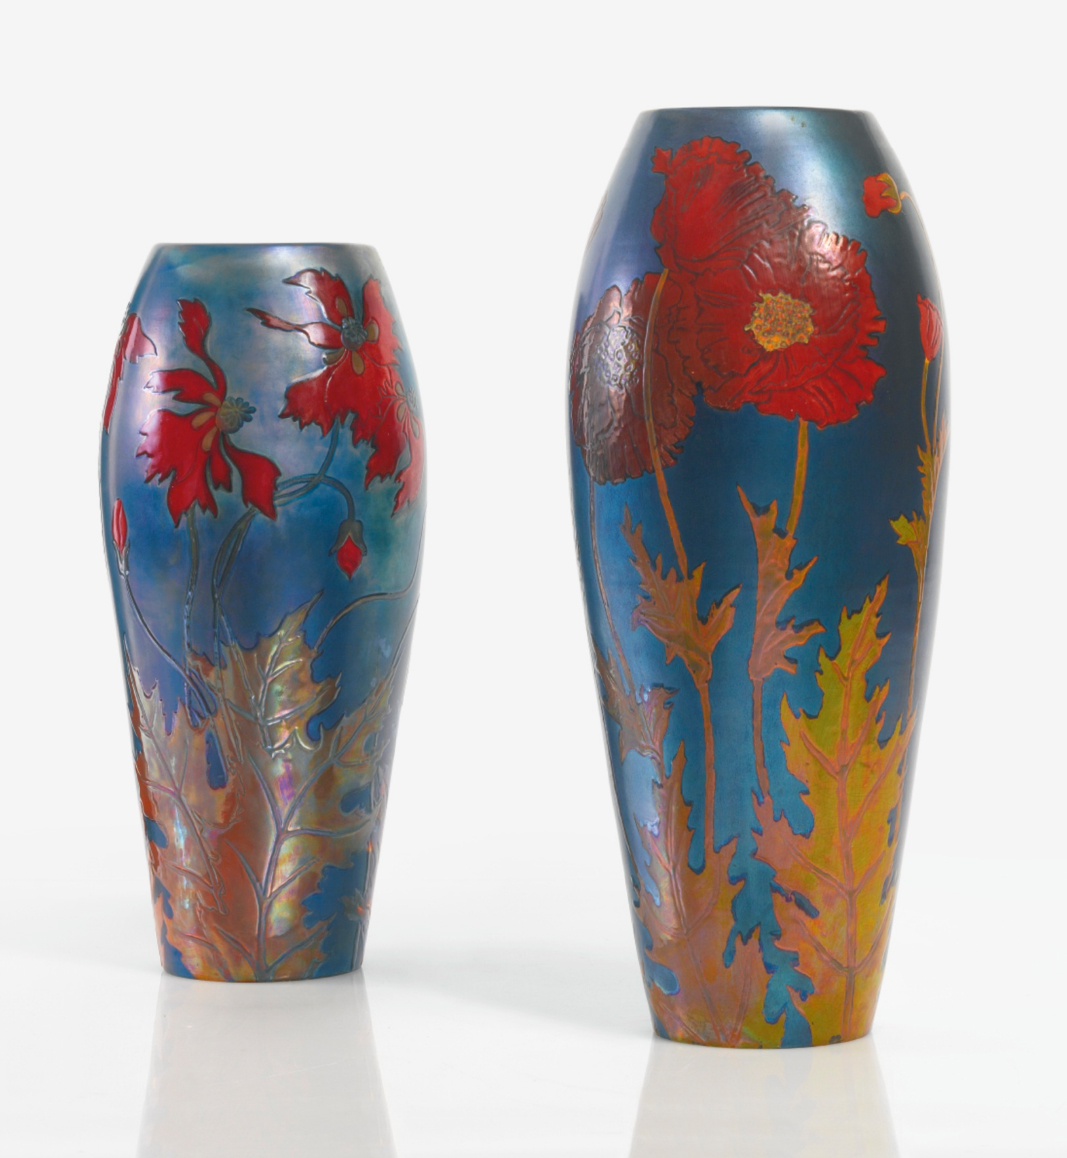 Zsolnay vases, Sotheby's lot #s 47 and 48